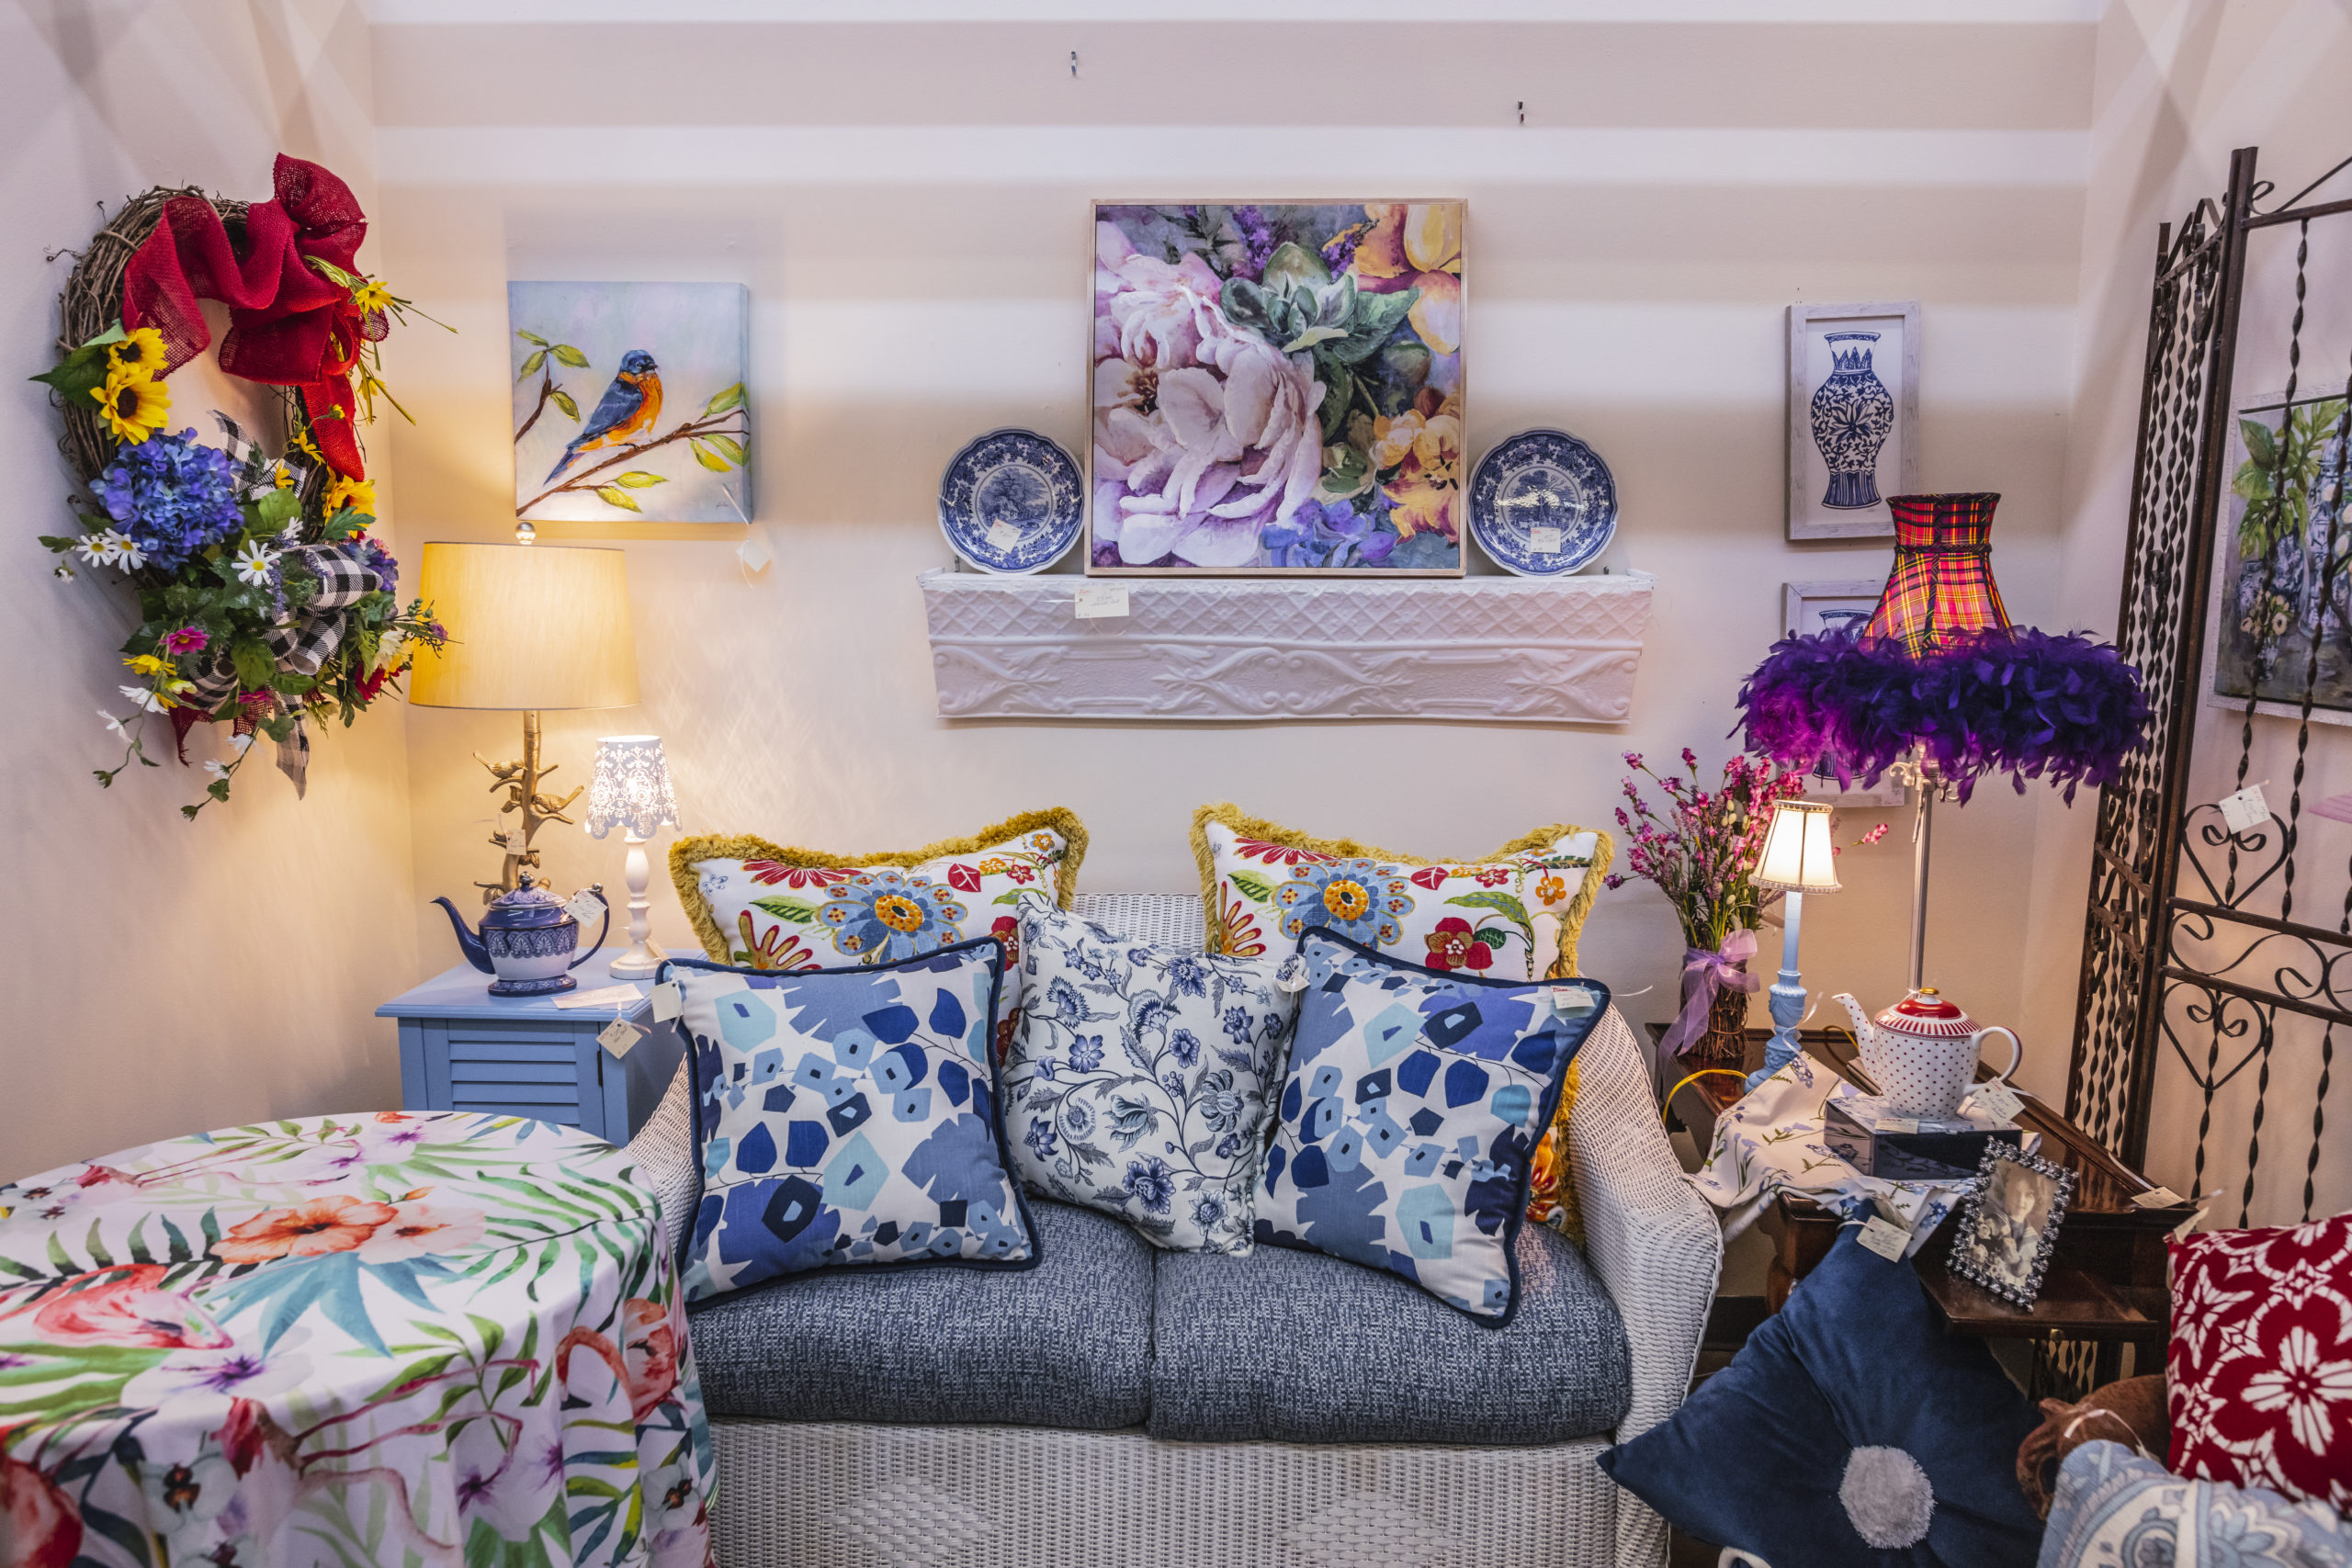 Make Your Home Shine Before Summer with These Unique Home Decor Trends